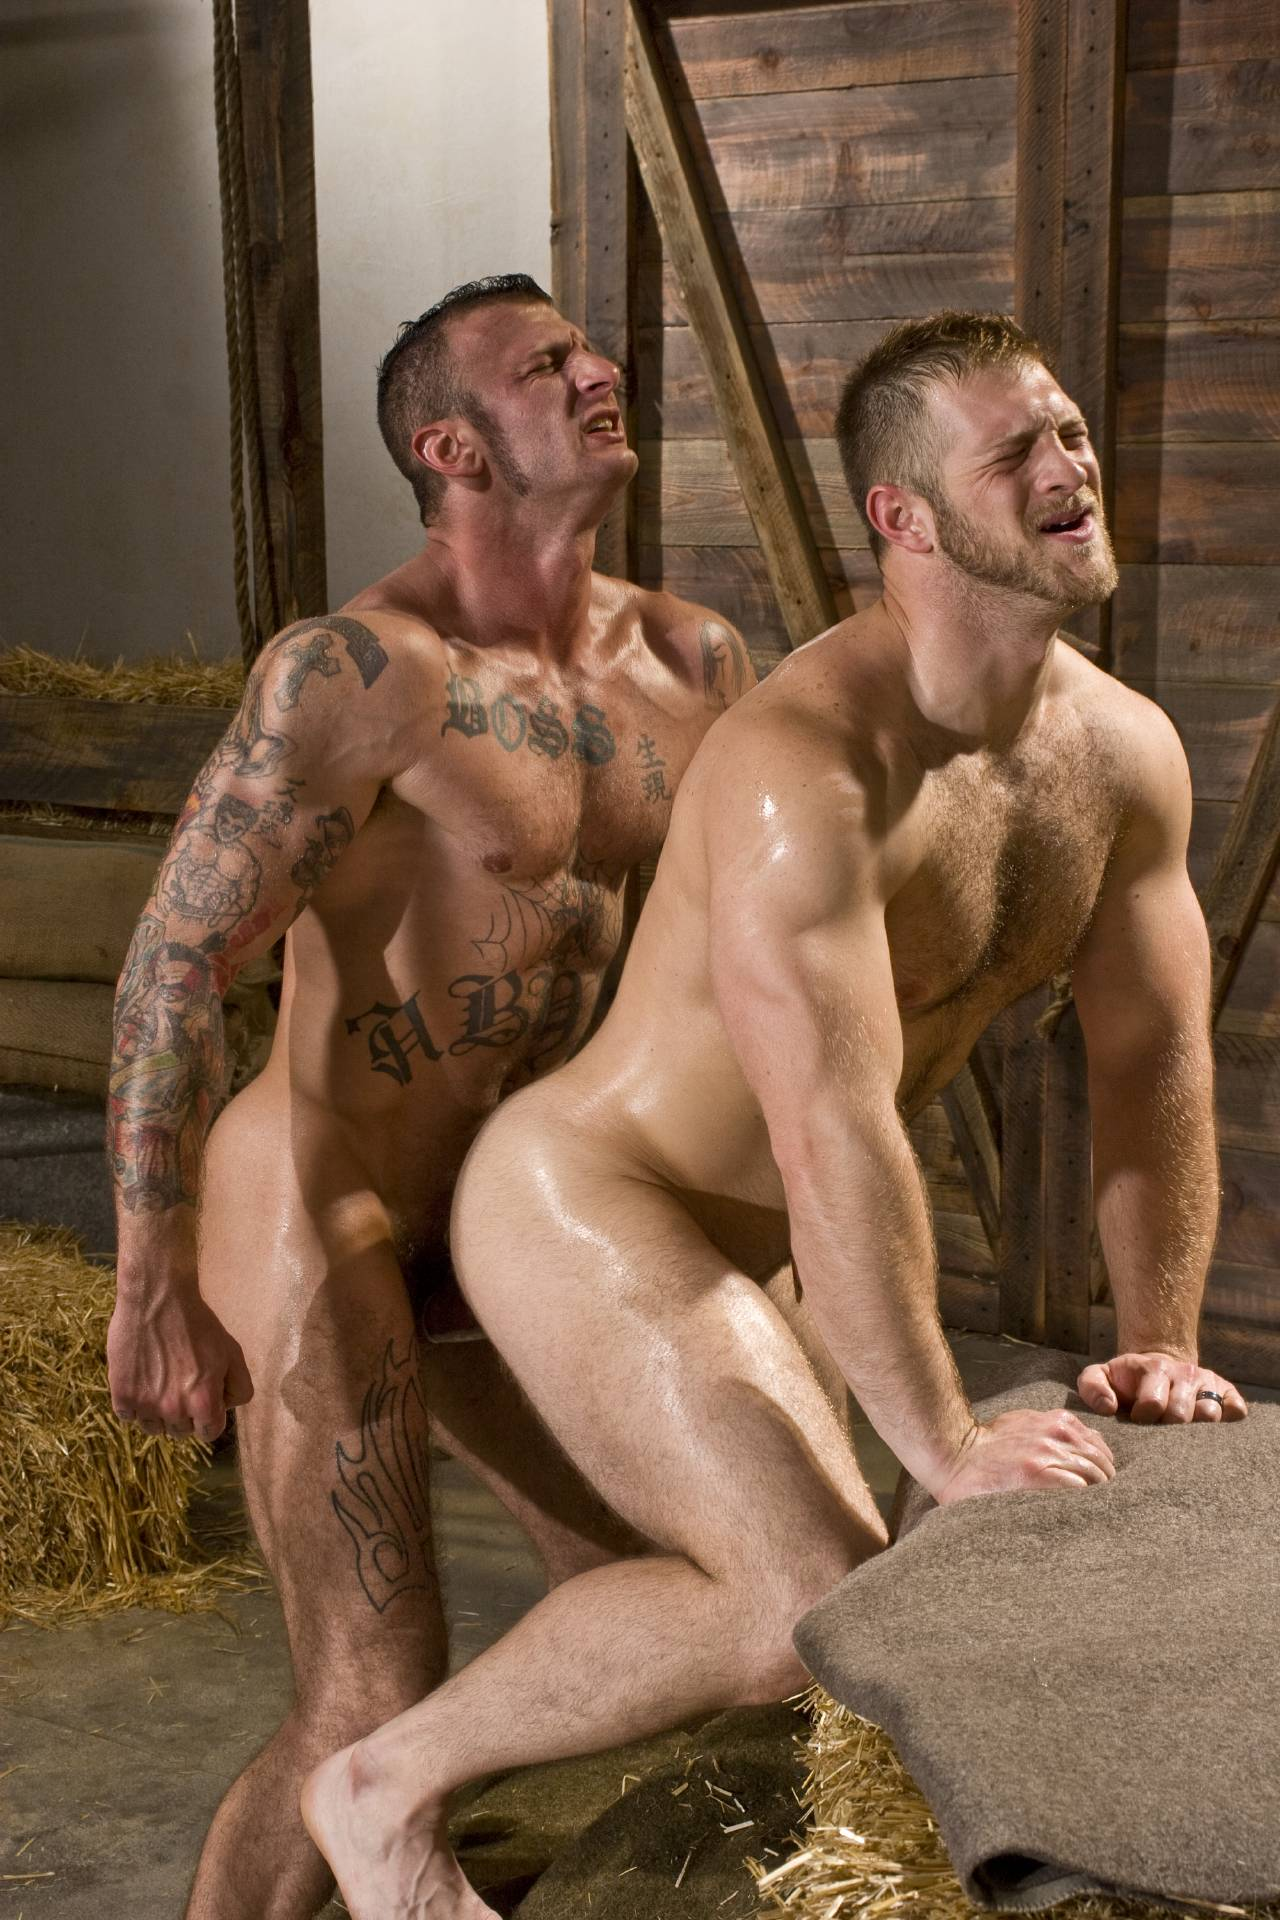 Ricky Sinz fuck Paul Wagner Roll in the Hay gay hot daddy dude men porn